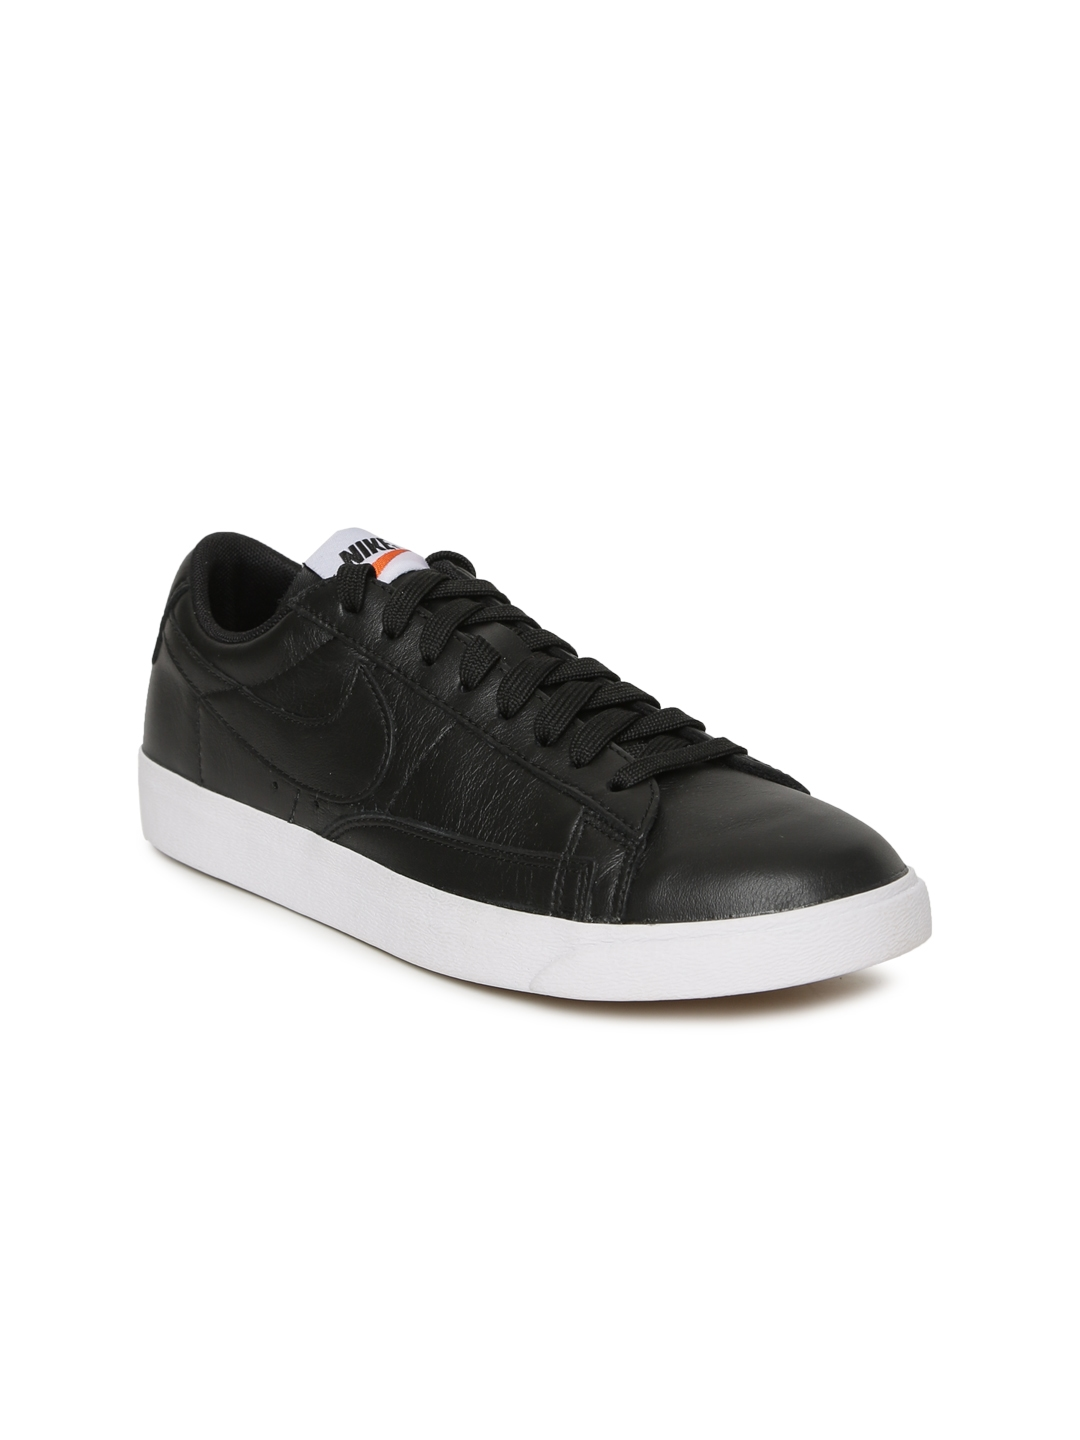 1178e28c546d Buy Nike Women Black BLAZER LOW Leather Sneakers - Casual Shoes for ...